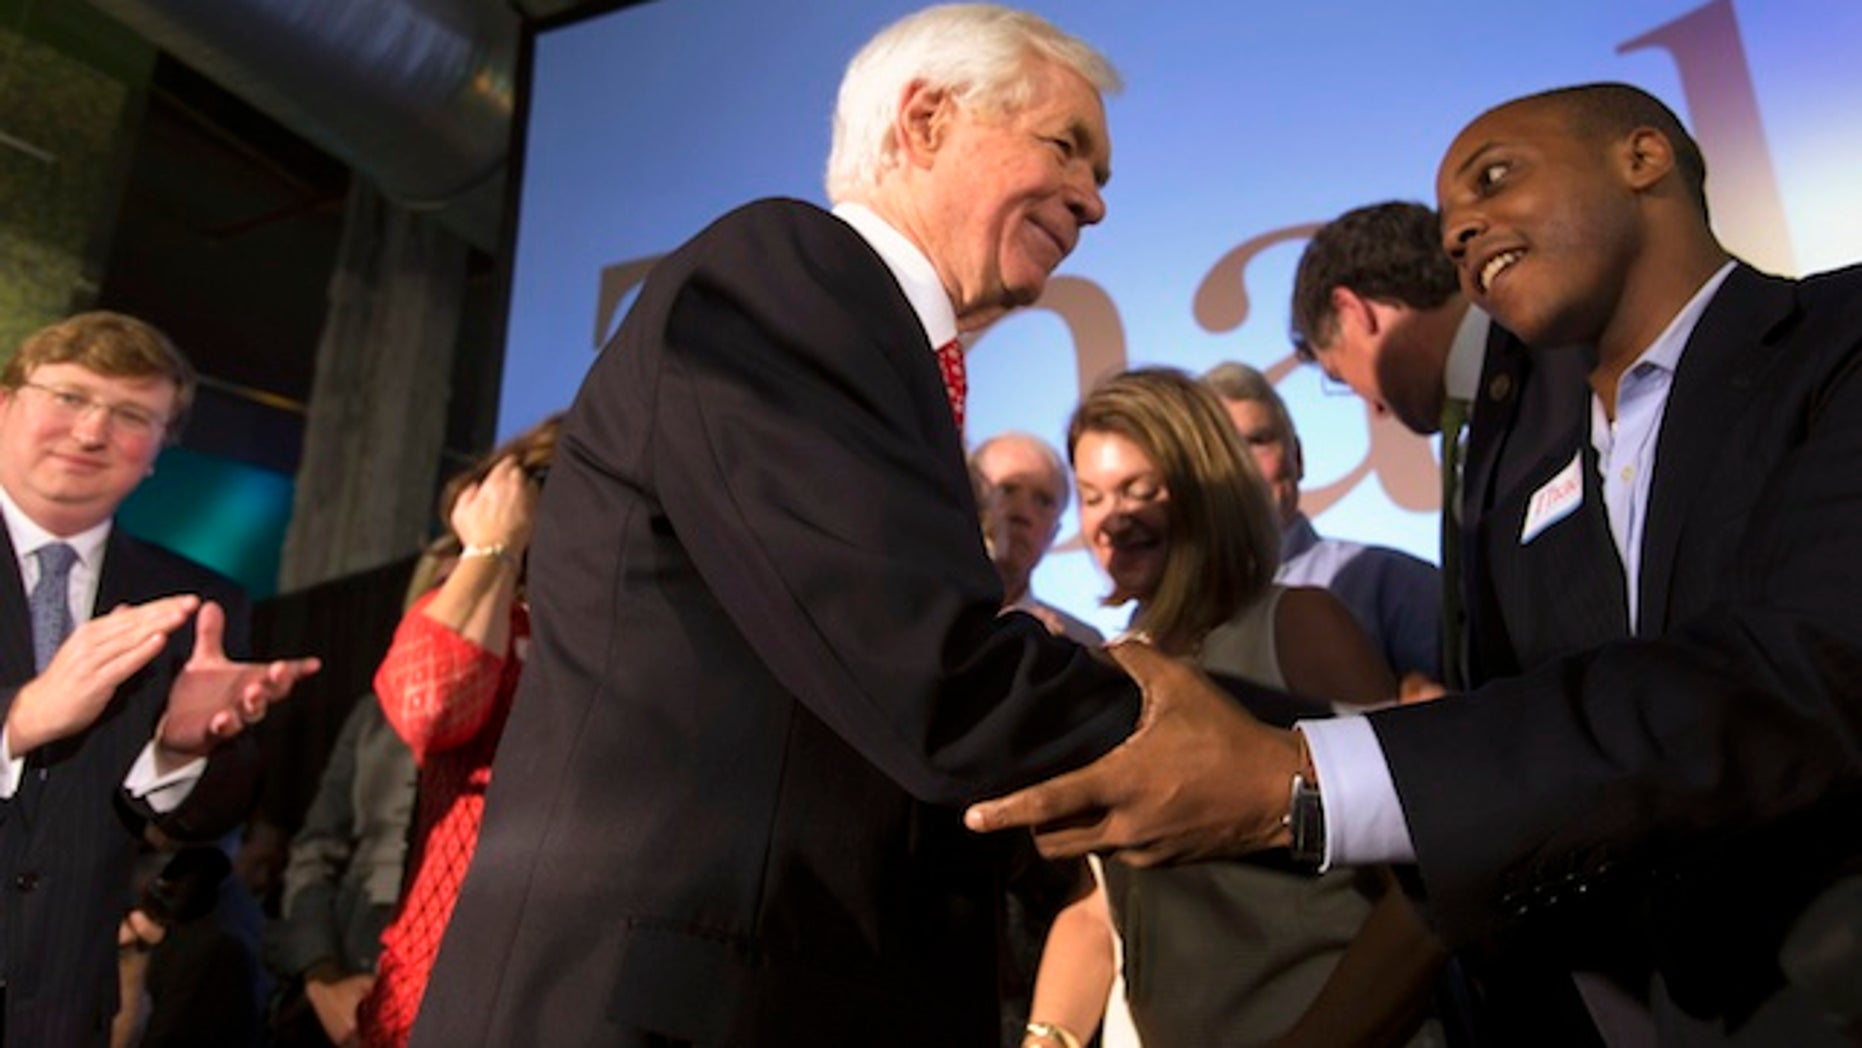 Republican U.S. Senator Thad Cochran greets supporter Marcus Ward (R) during an election night celebration after defeating Tea Party challenger Chris McDaniel in a run-off election in Jackson, Mississippi June 24, 2014. REUTERS/Lee Celano  (UNITED STATES - Tags: POLITICS ELECTIONS) - RTR3VLJF